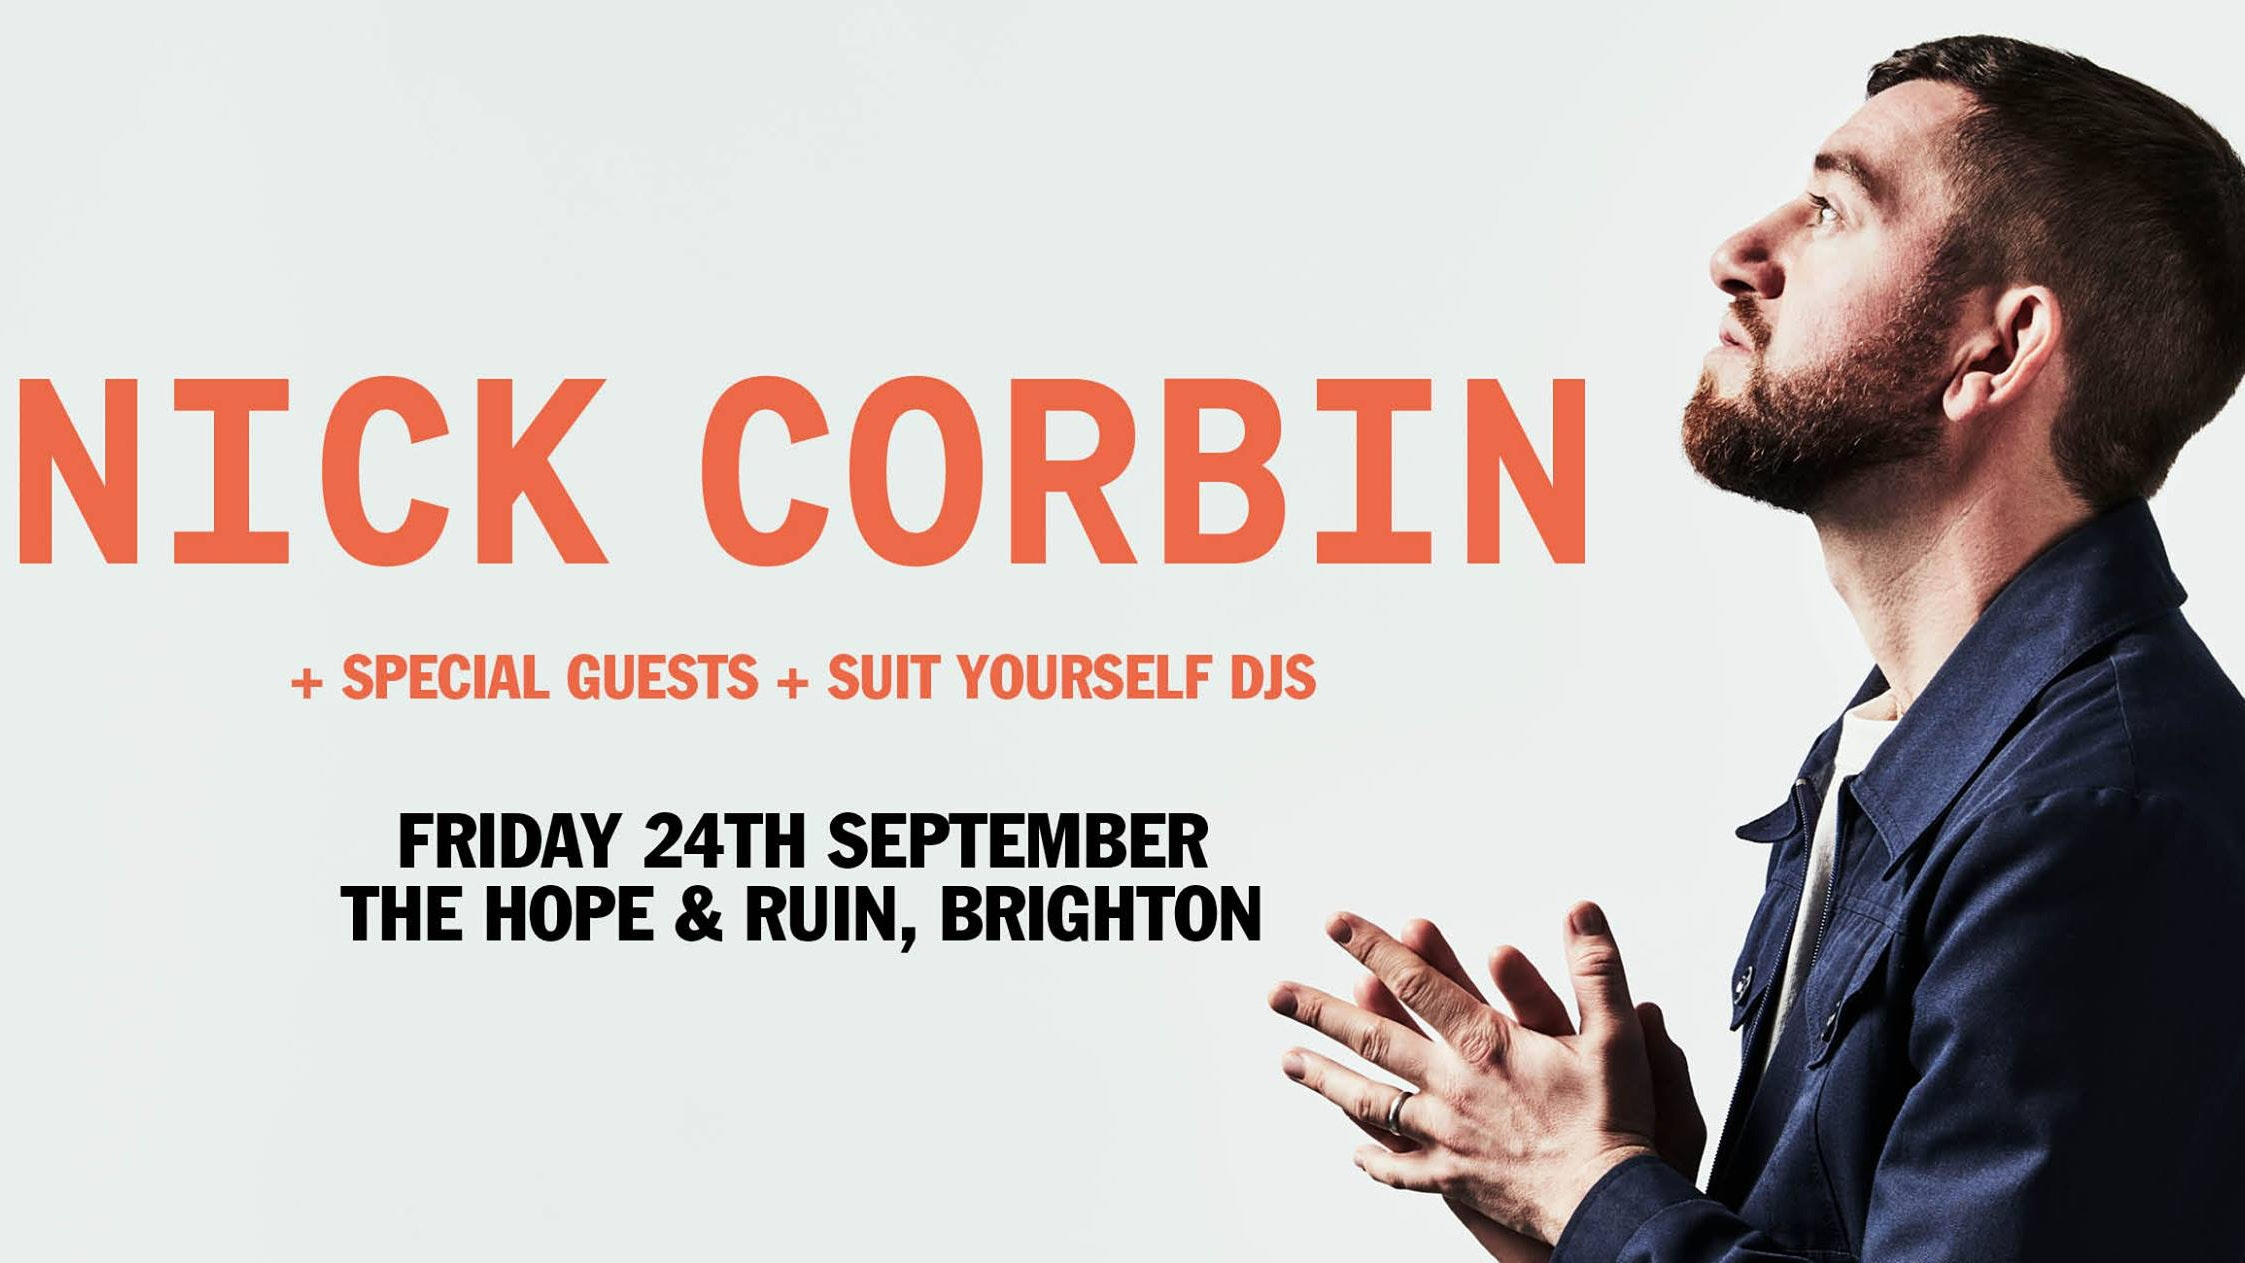 Nick Corbin (Full Band) + DJs